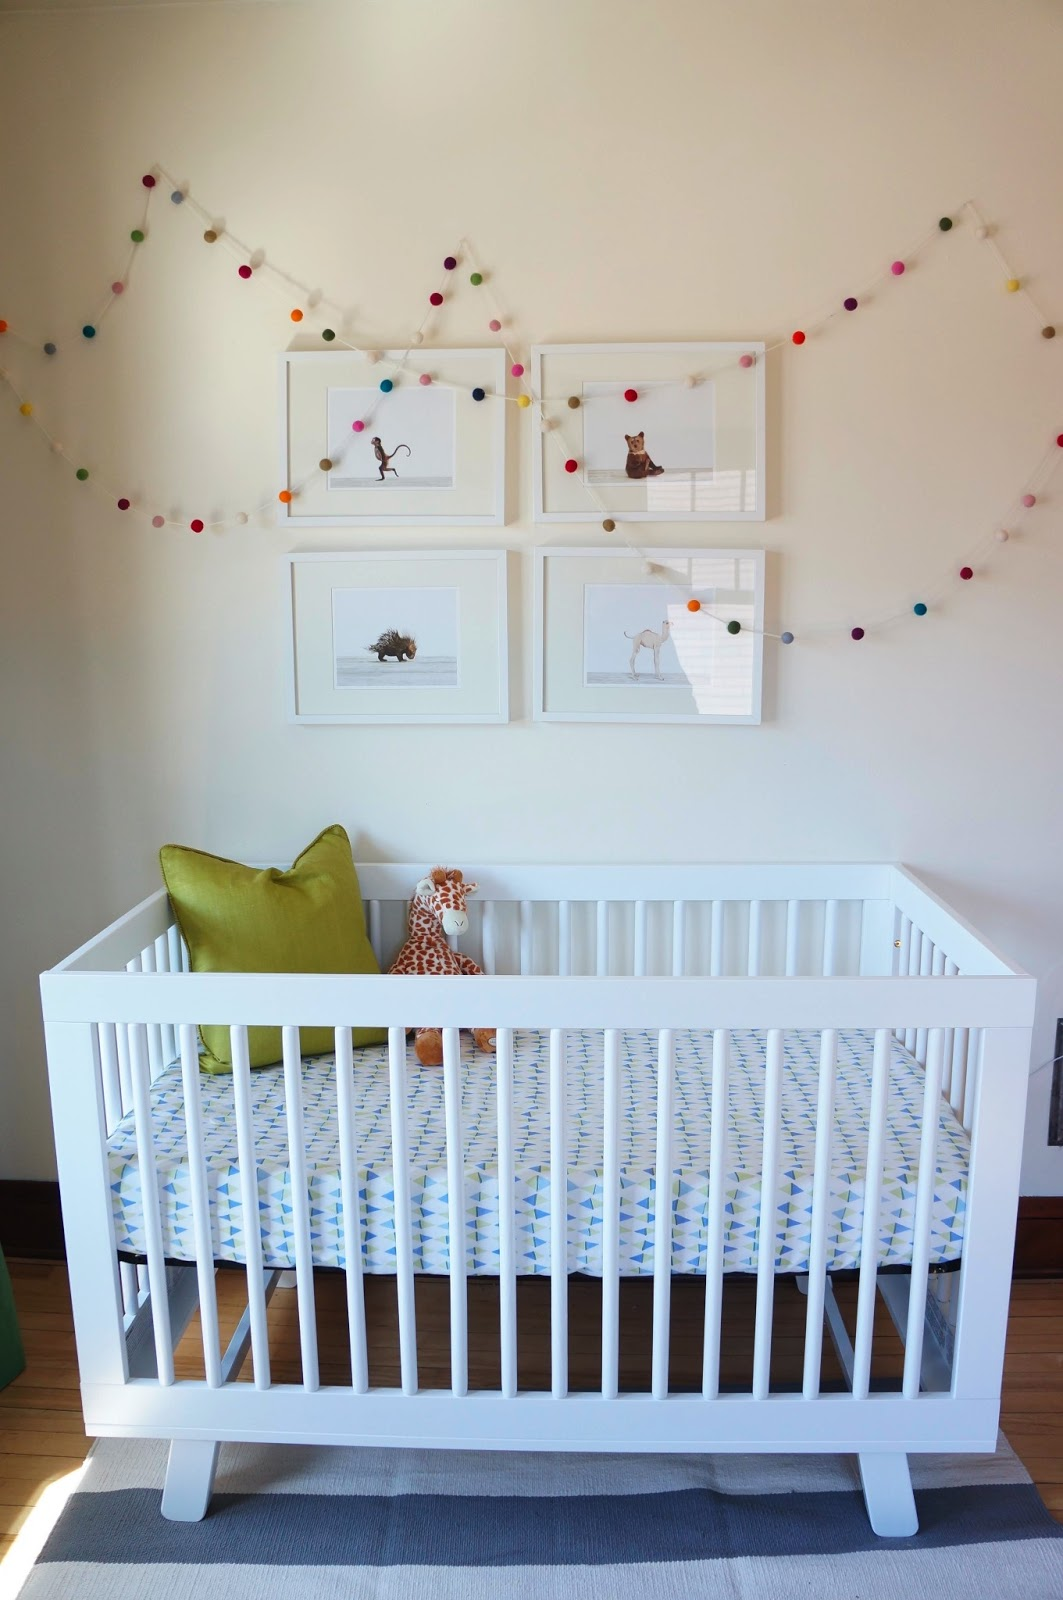 white crib by babyletto on wooden floor matched with white wall for nursery decor ideas